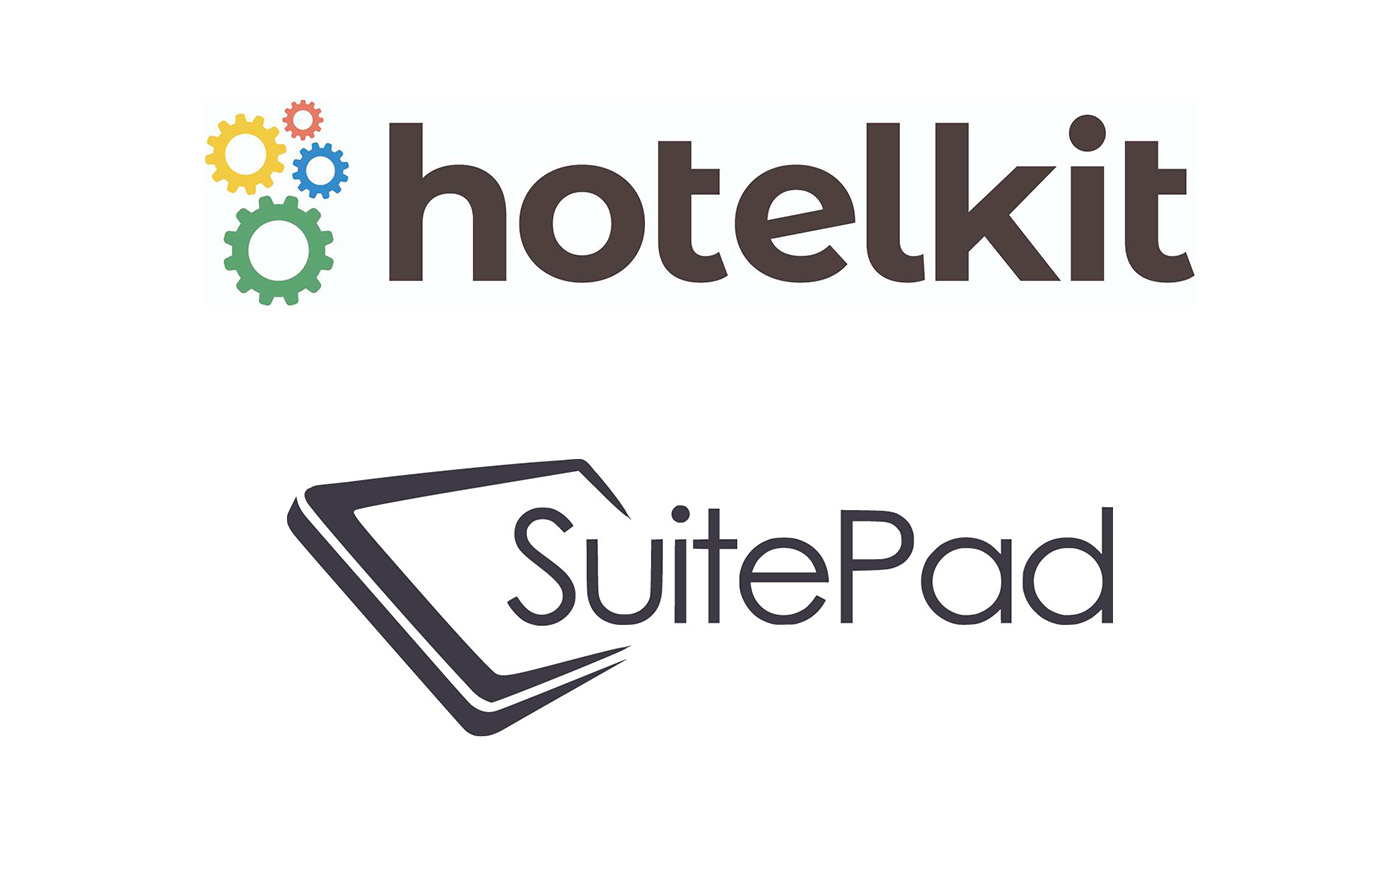 SuitePad and hotelkit logo on a white background